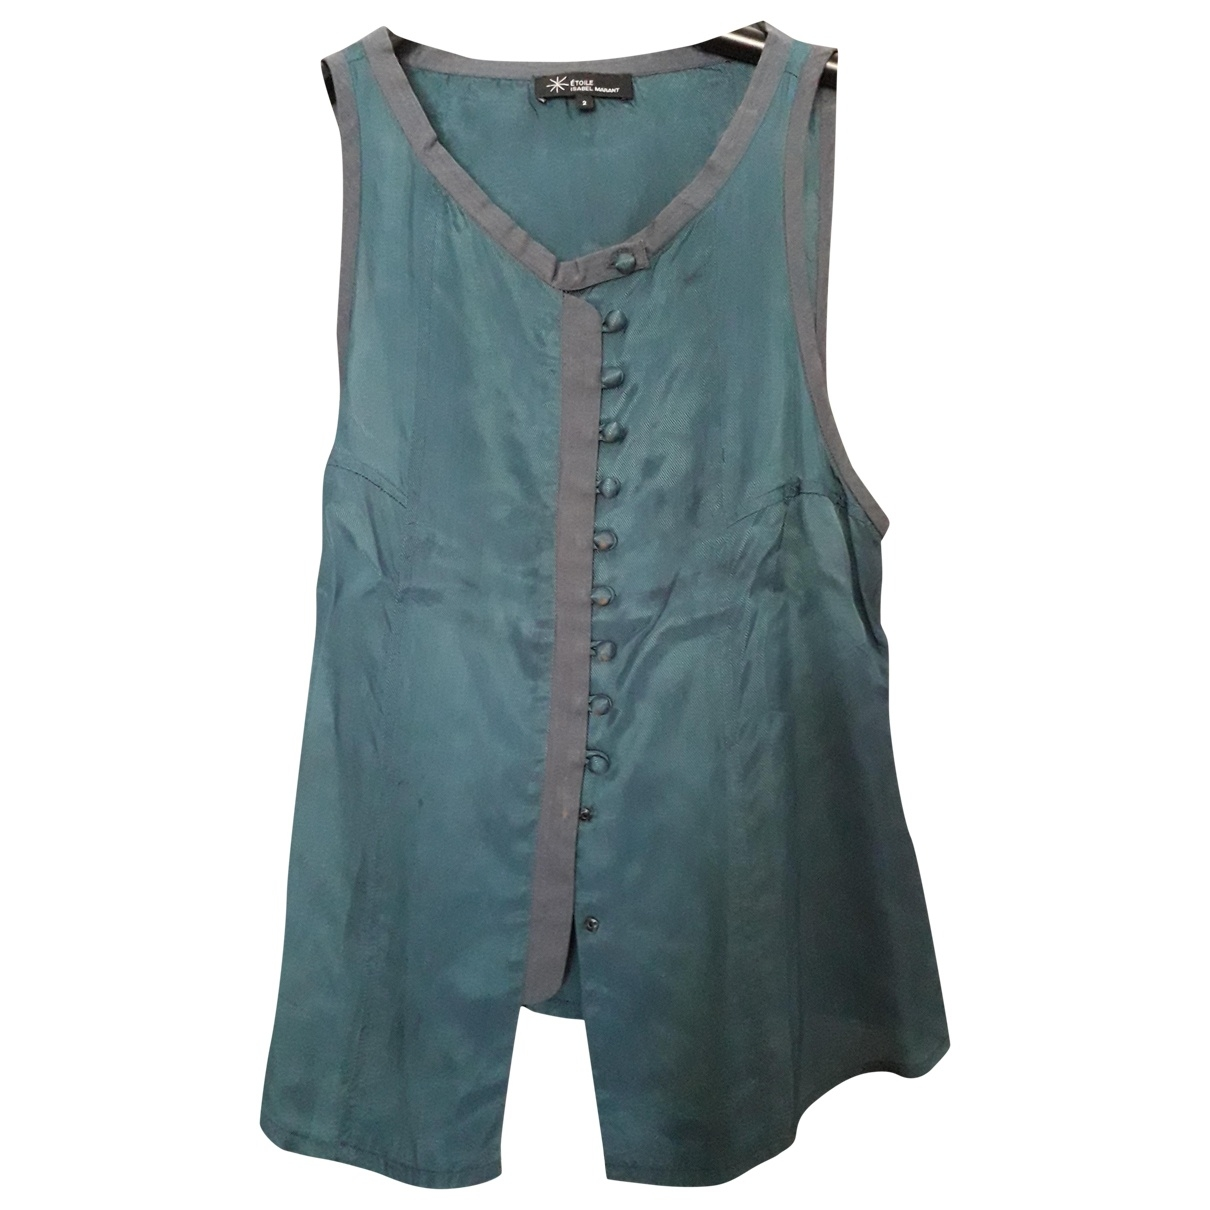 Isabel Marant Etoile \N Turquoise Cotton  top for Women 2 0-5